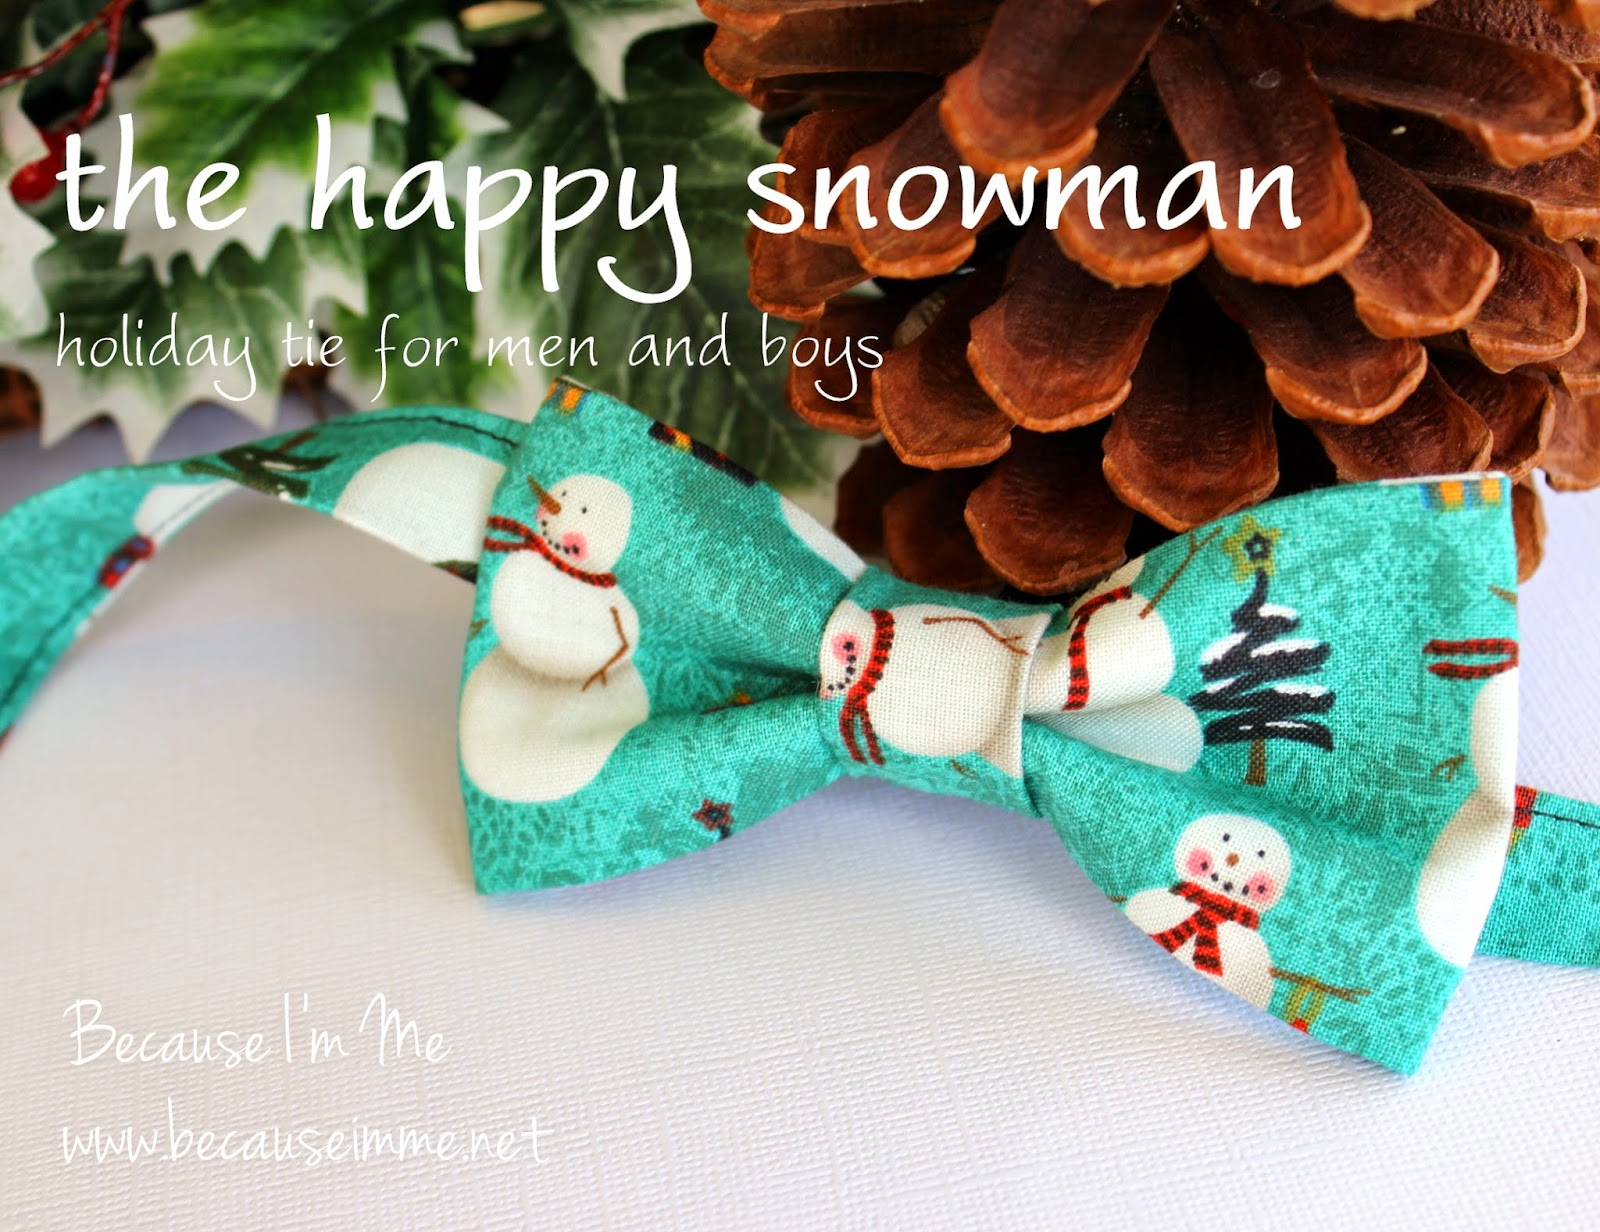 Rustic snowman bowtie and necktie for men and boys